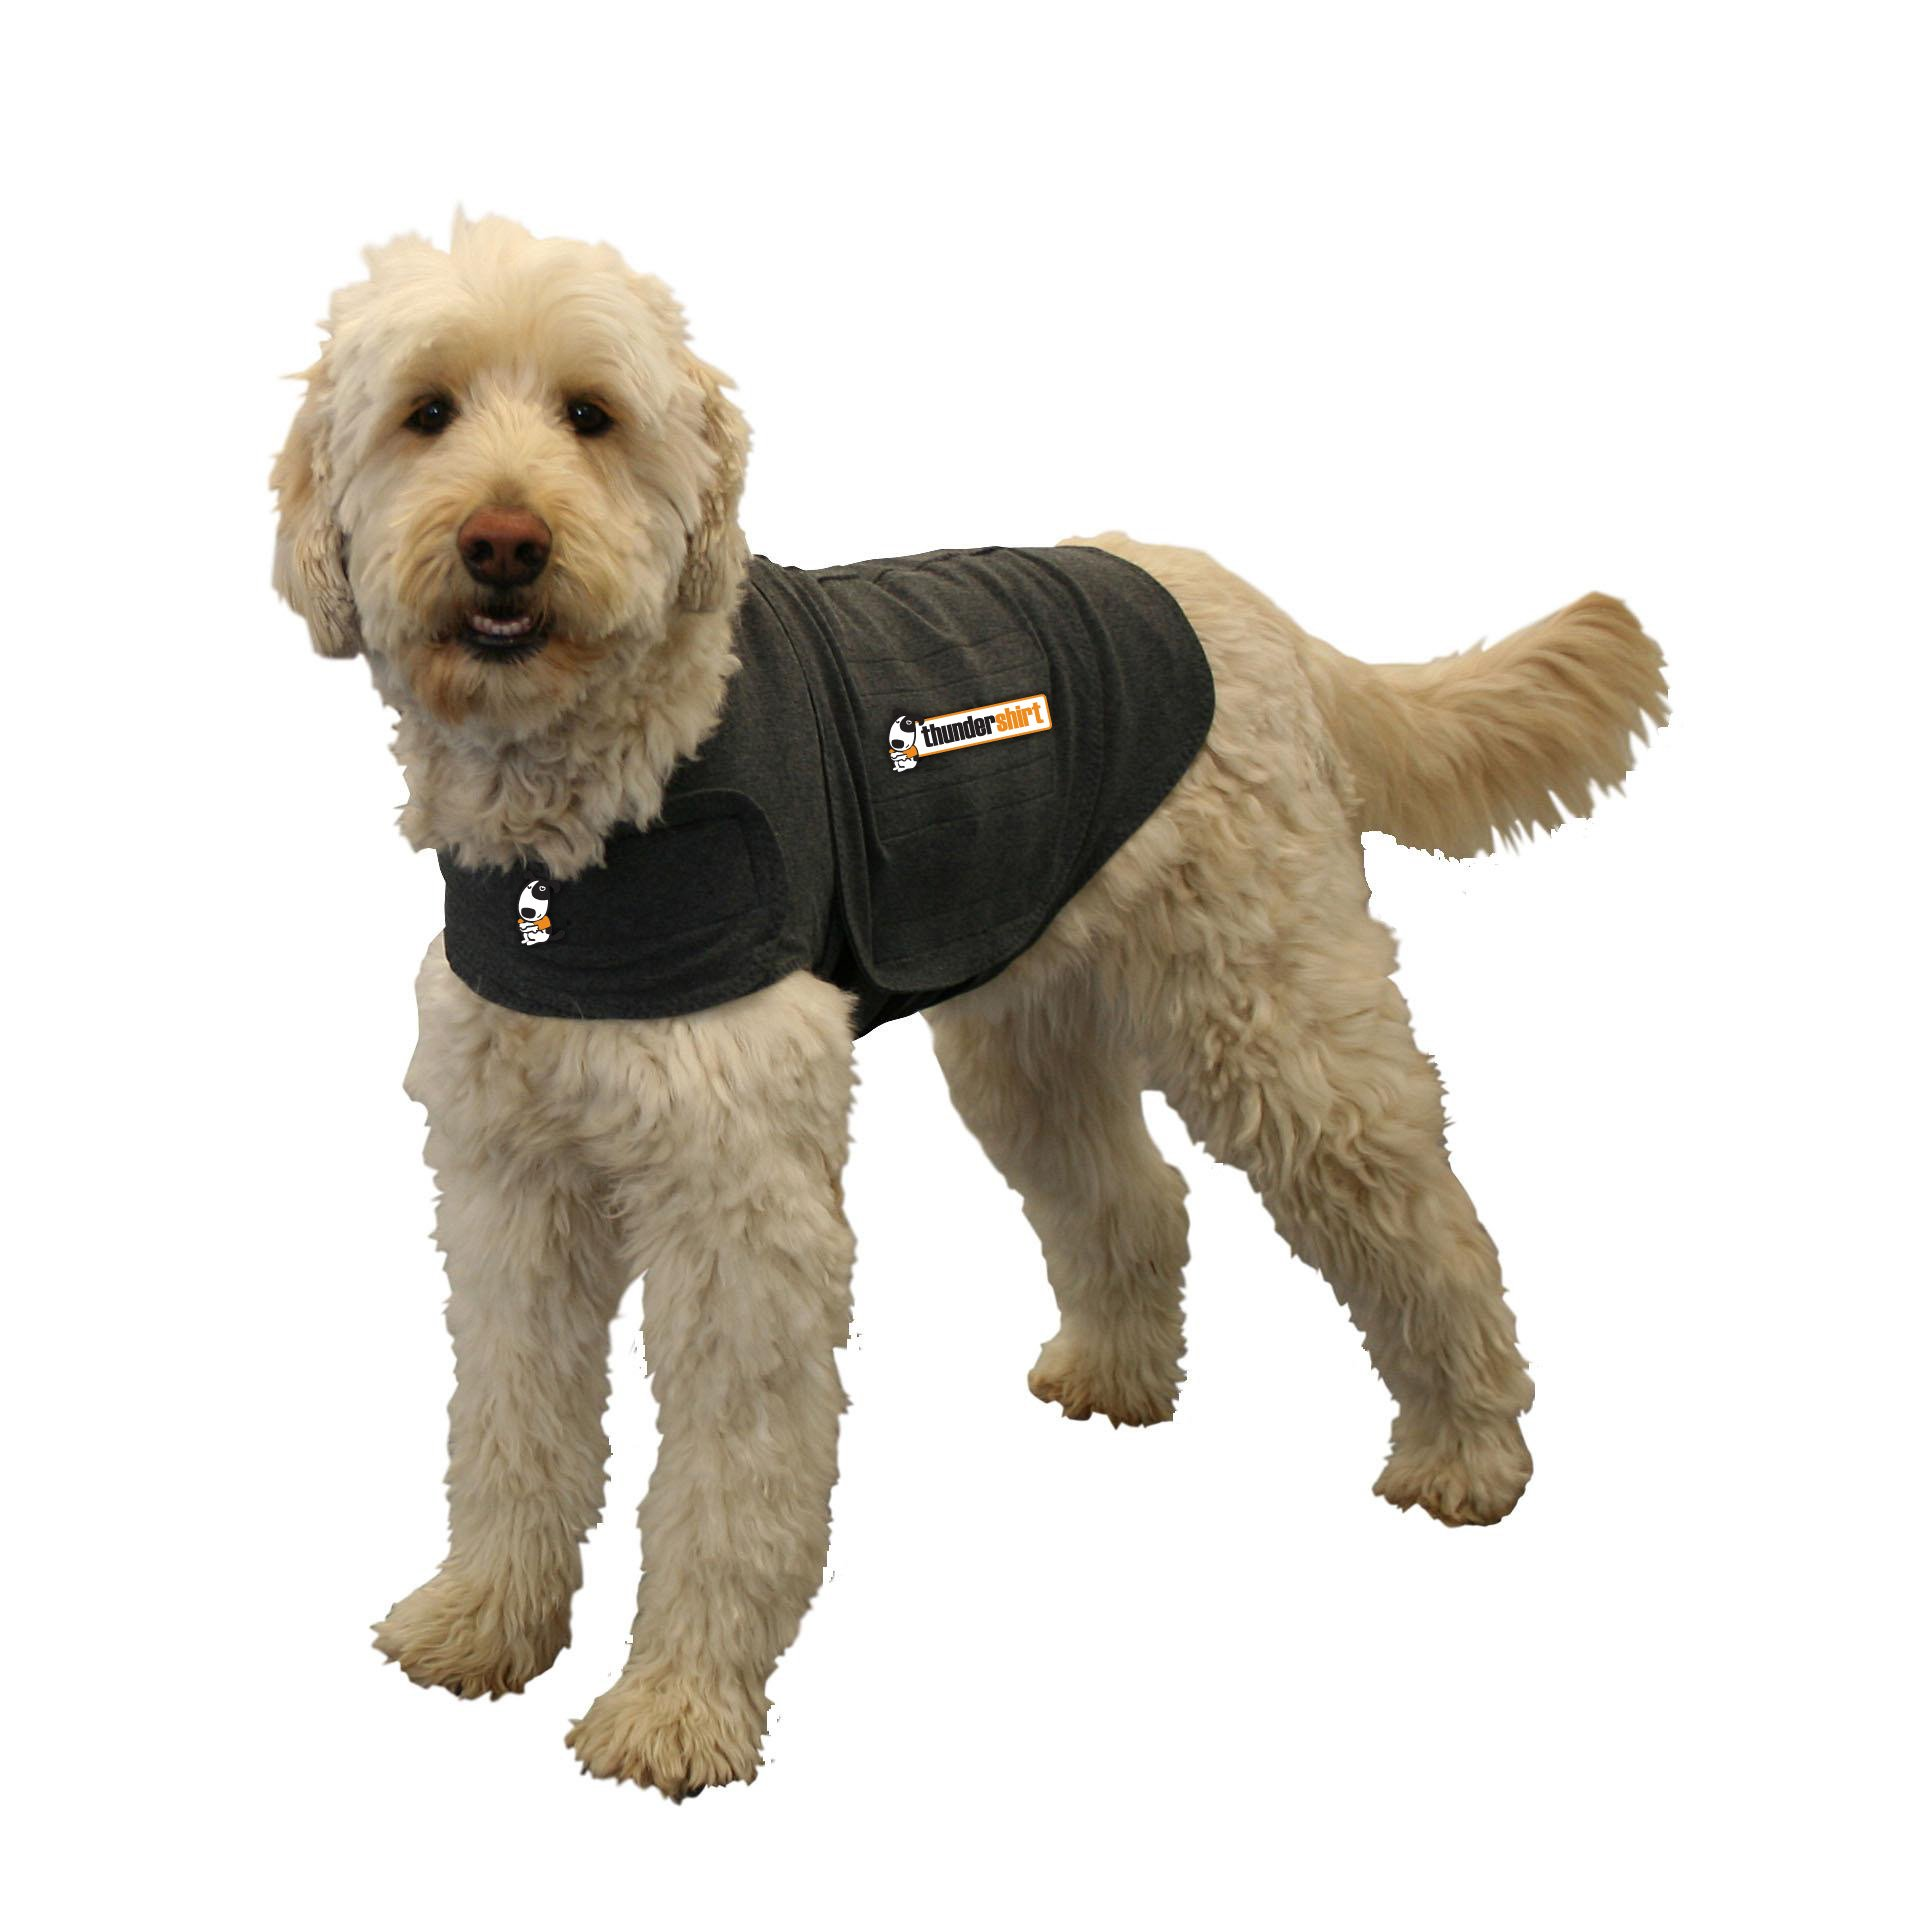 ThunderShirt Classic Dog Anxiety Jacket X Large (65-110 lb)